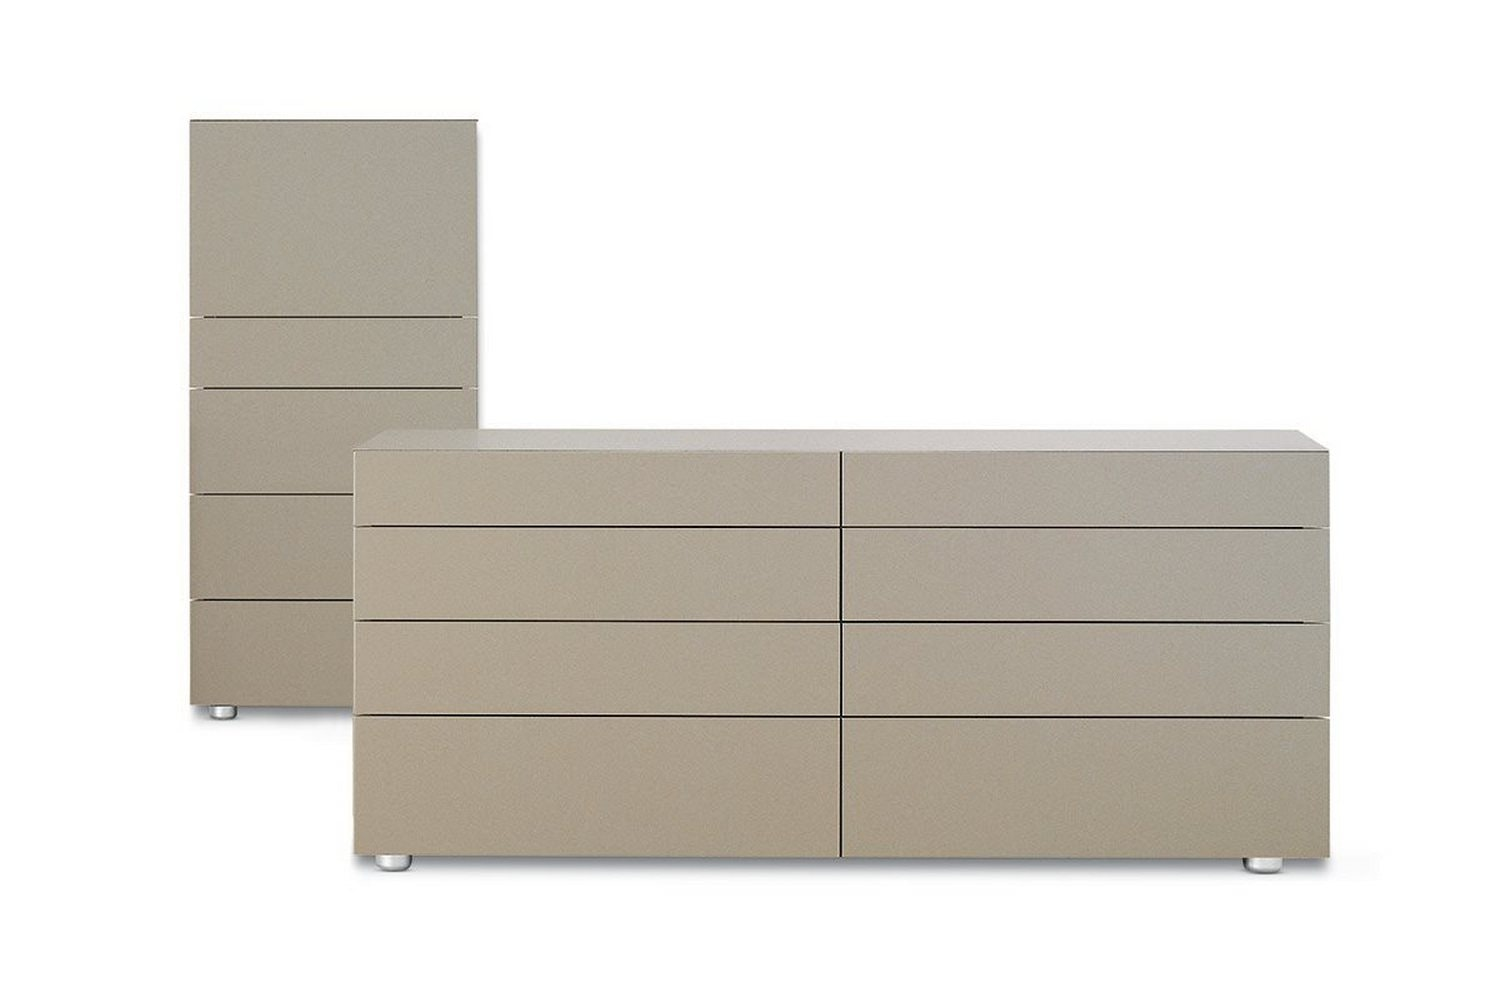 Abbinabili Chest of Drawers by CR&S Poliform for Poliform